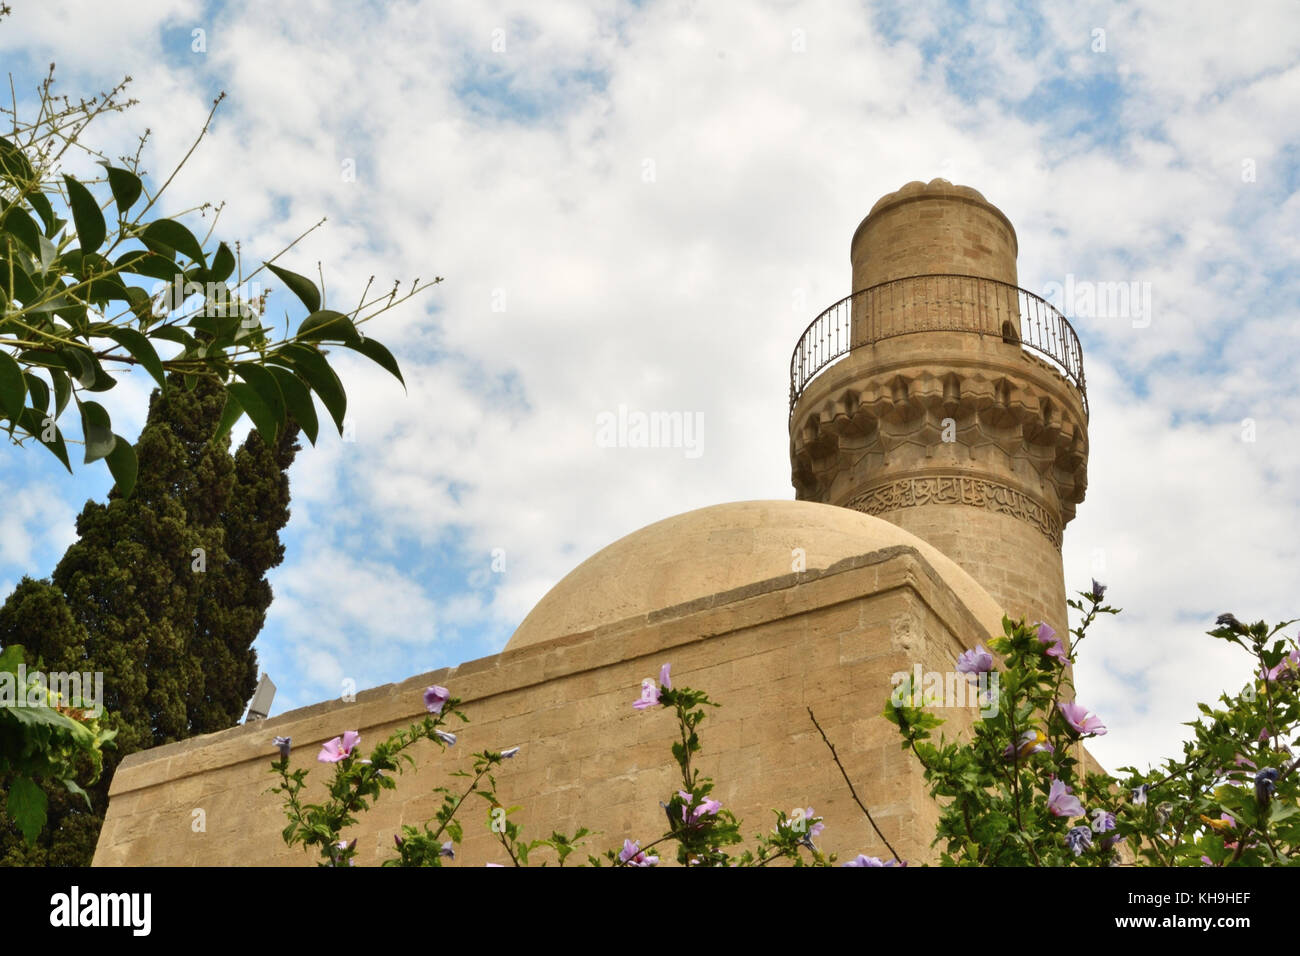 Baku,the 15th century mosque in the fortless built during the Shirvanshah dynasty - Stock Image